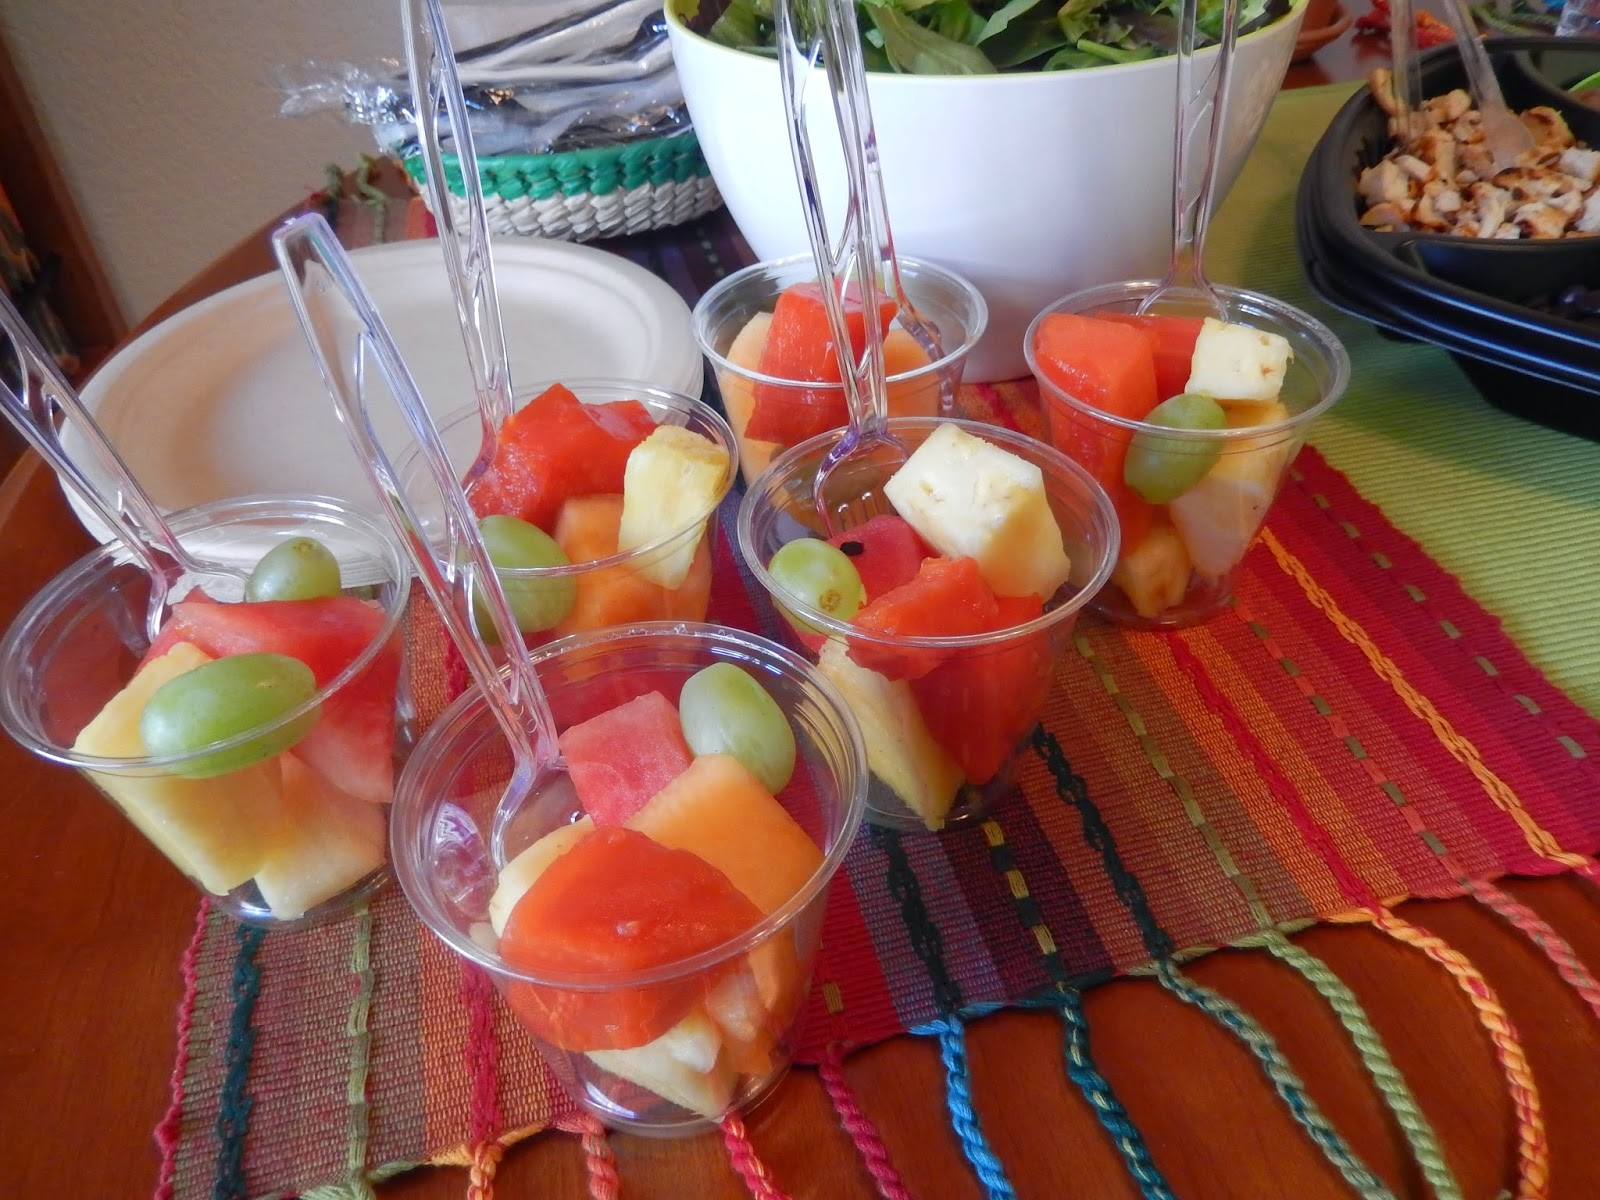 Mexican%2BFiesta%2BMeeting%2BLuncheon%2BBrunch%2BCinco%2Bde%2BMayo%2BEggface%2BFruit%2BSalad Weight Loss Recipes Healthy Meetings (or Parties) Made Easy